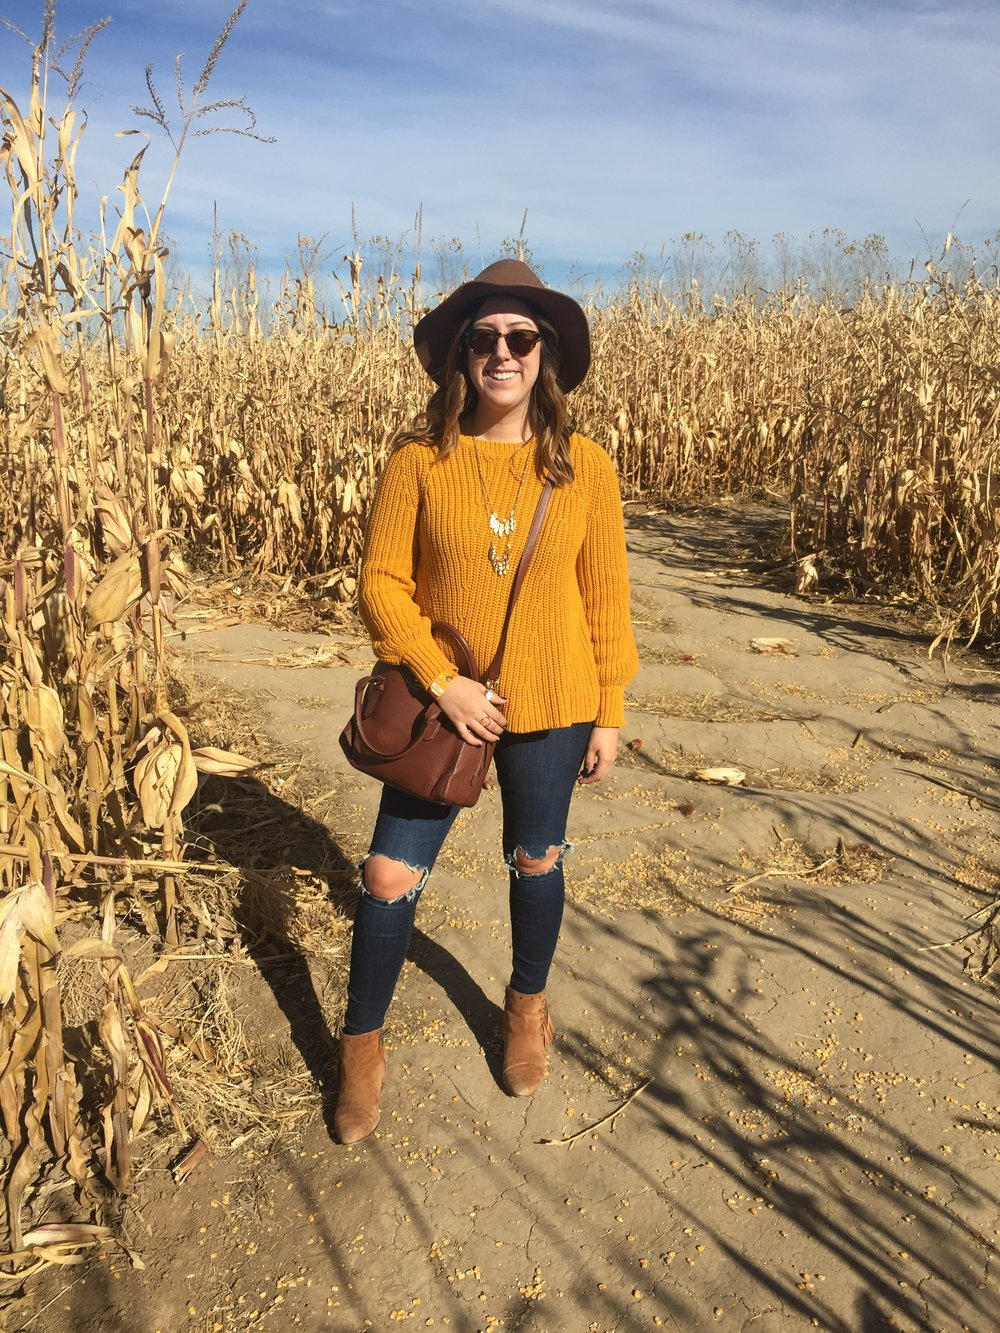 This outfit gives me all the fall vibes! Pairing this sweater with fringed suede booties, a floppy hat and a layered leaf necklace was the perfect choice for the corn maze!